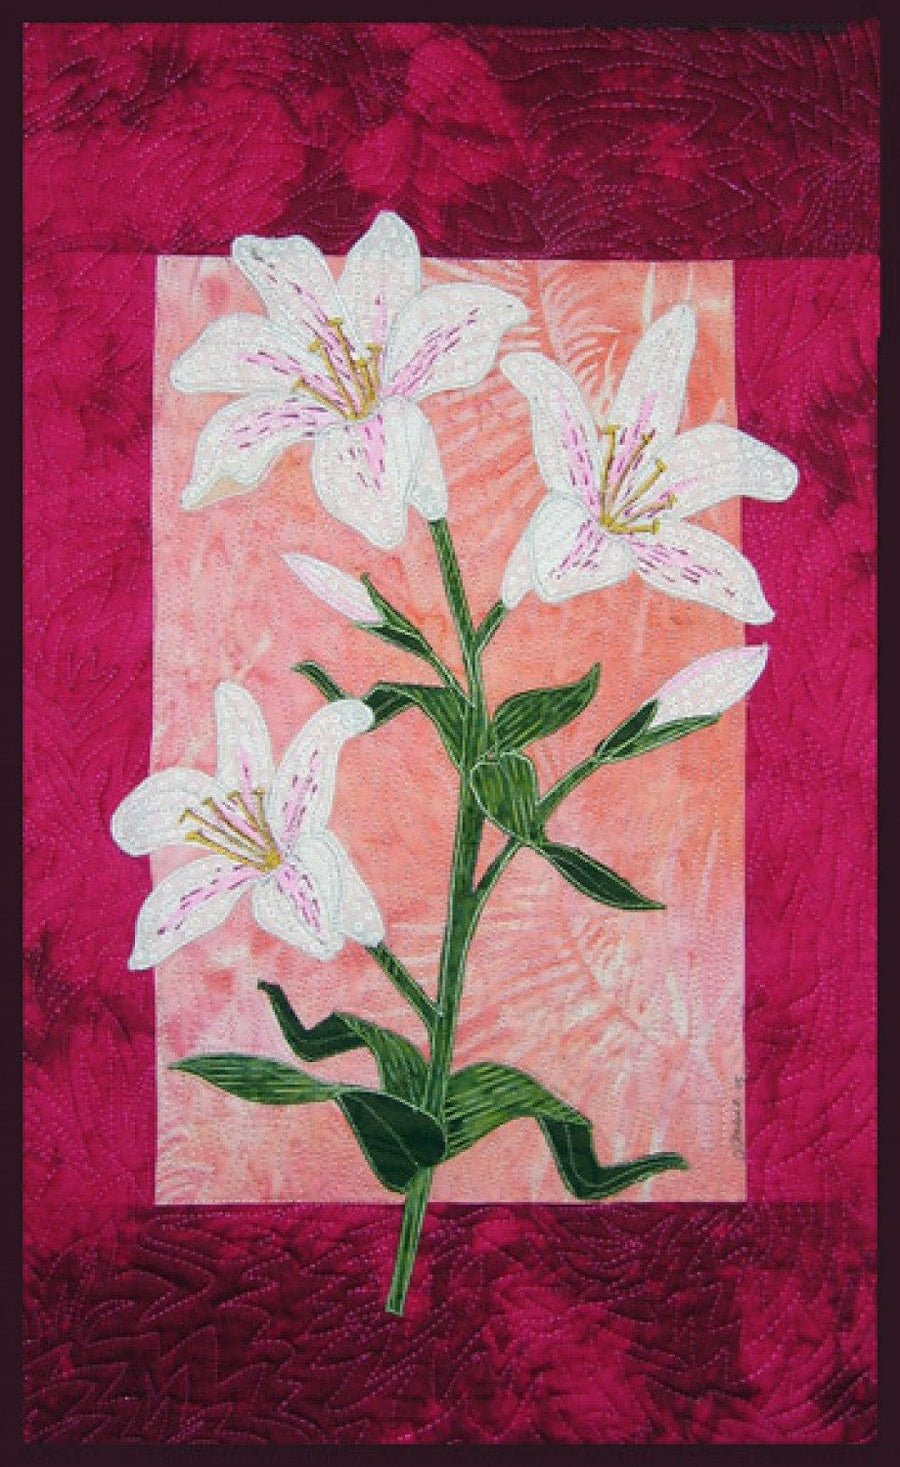 Zebra Patterns Speckled Lily Flower Applique Quilt Pattern - Beaverhead Treasures LLC